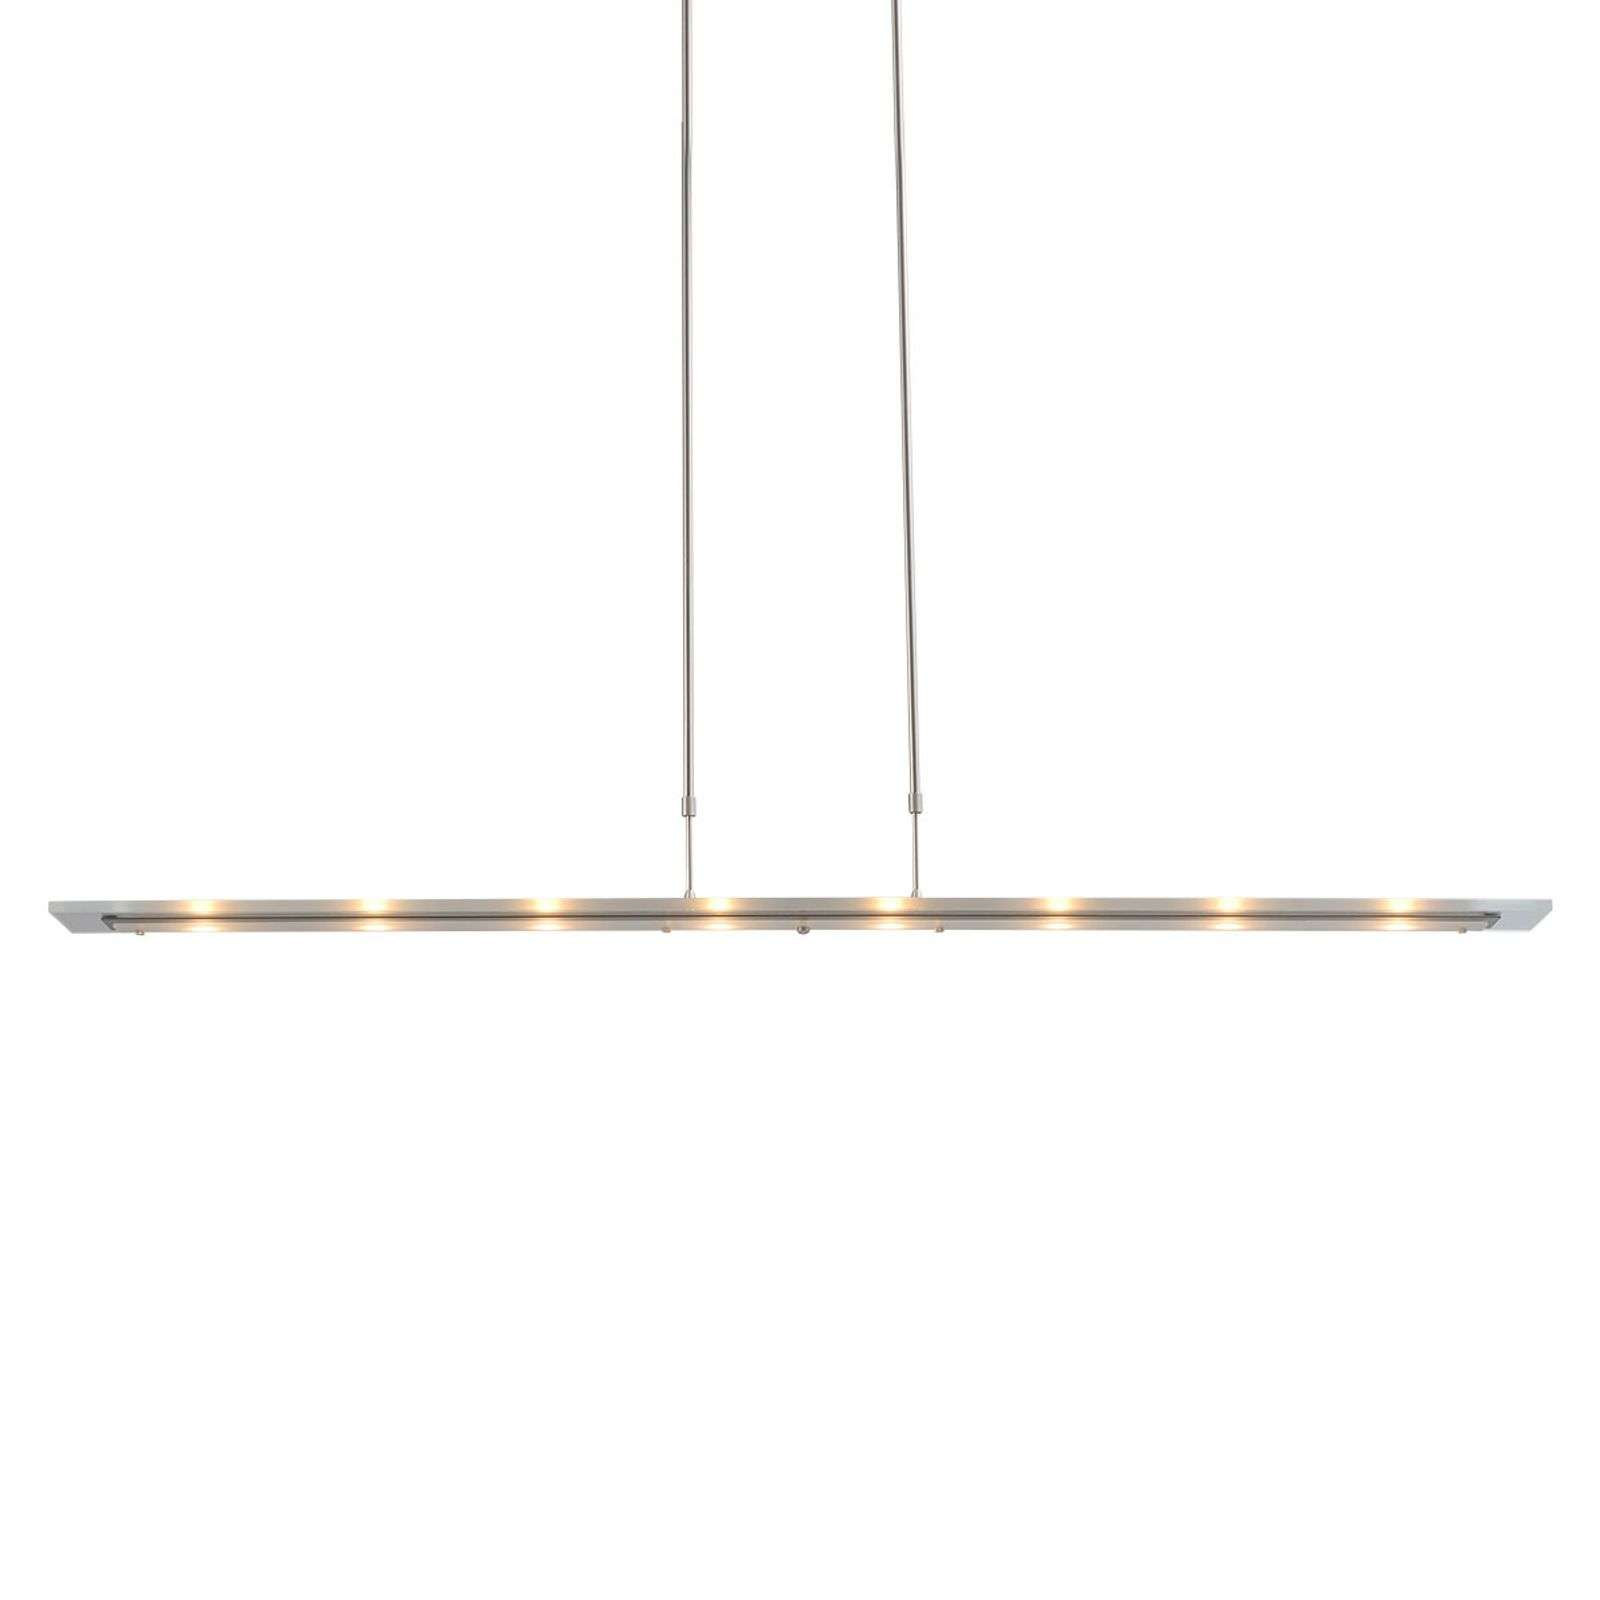 Suspension LED dimmable Vigo 130 cm